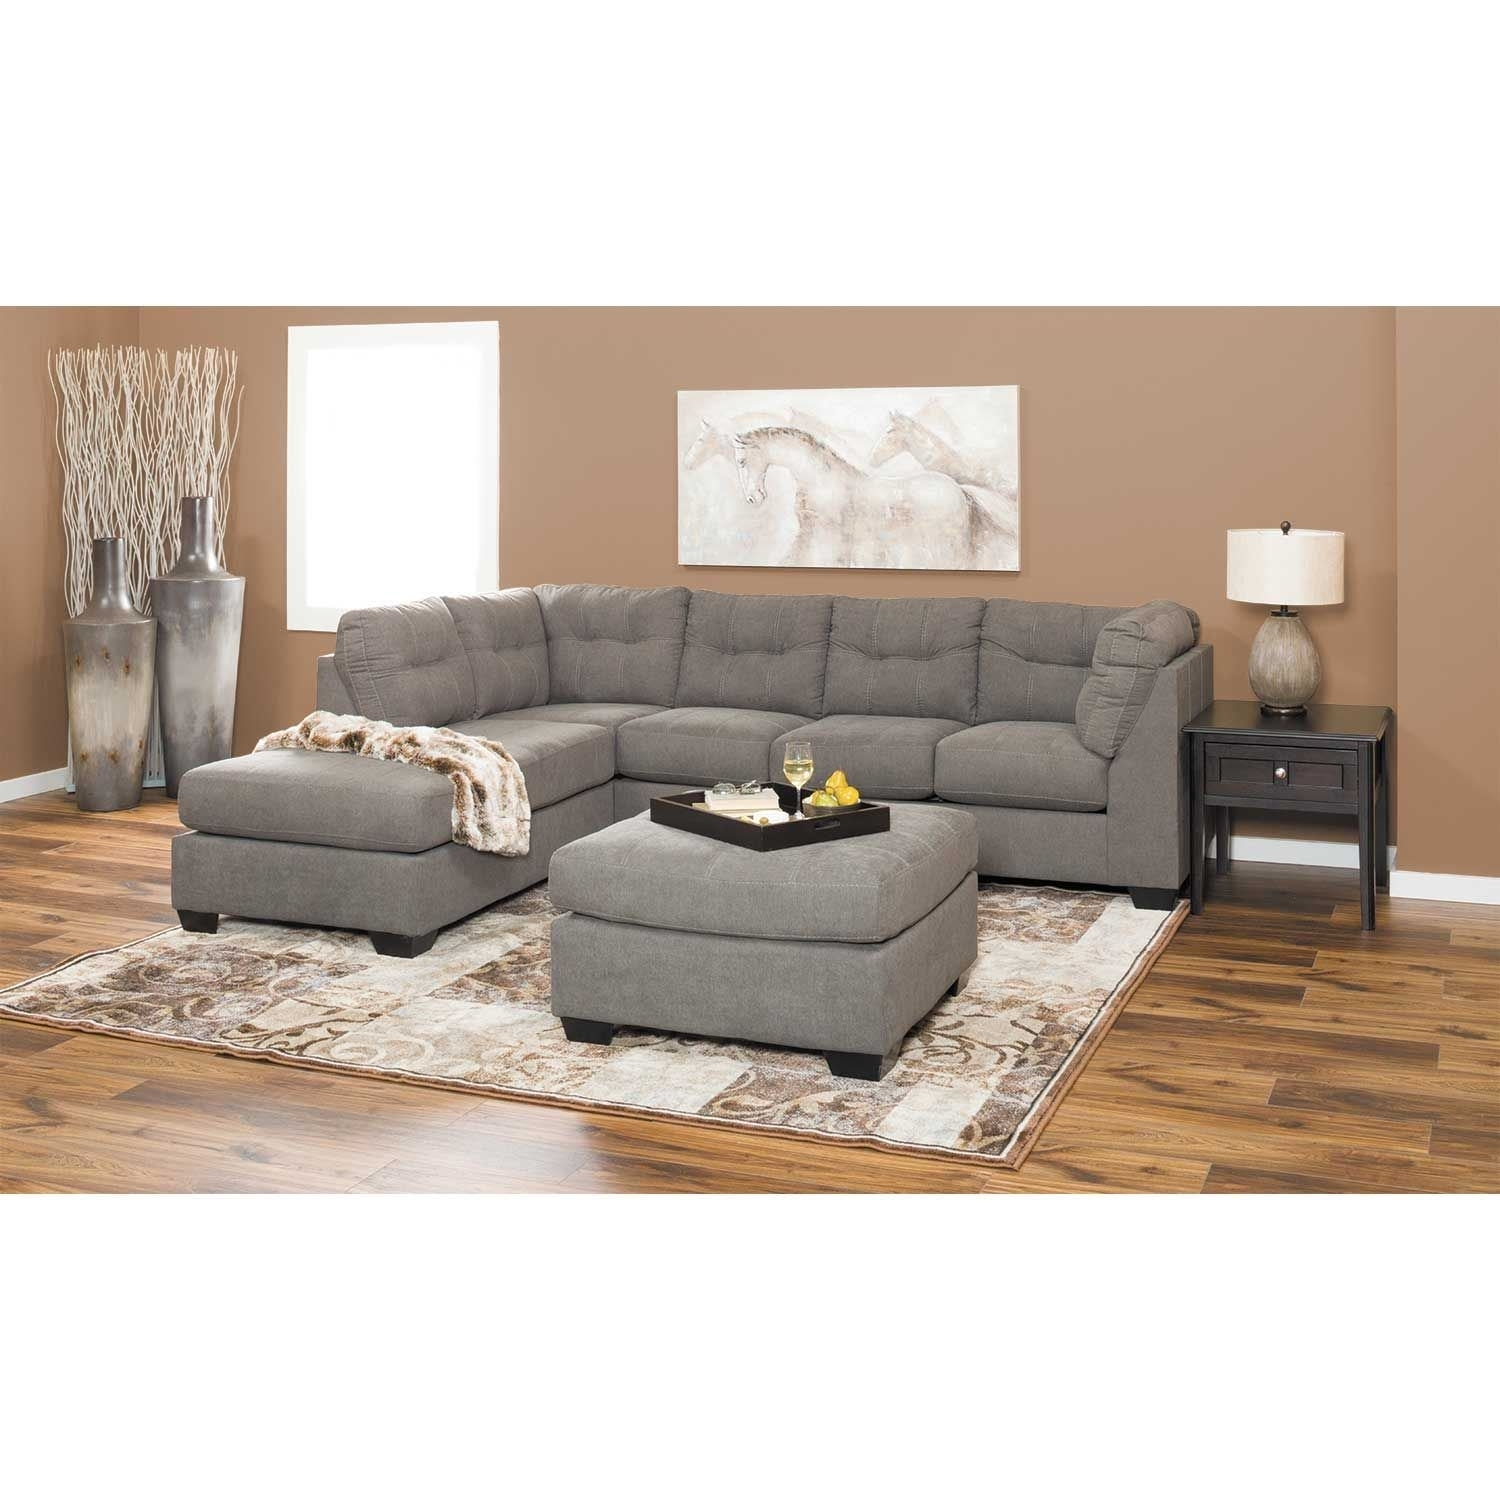 Maier Charcoal 2 Piece Sectional With Laf Chaise | 4520016/67 Inside Arrowmask 2 Piece Sectionals With Raf Chaise (Image 14 of 25)